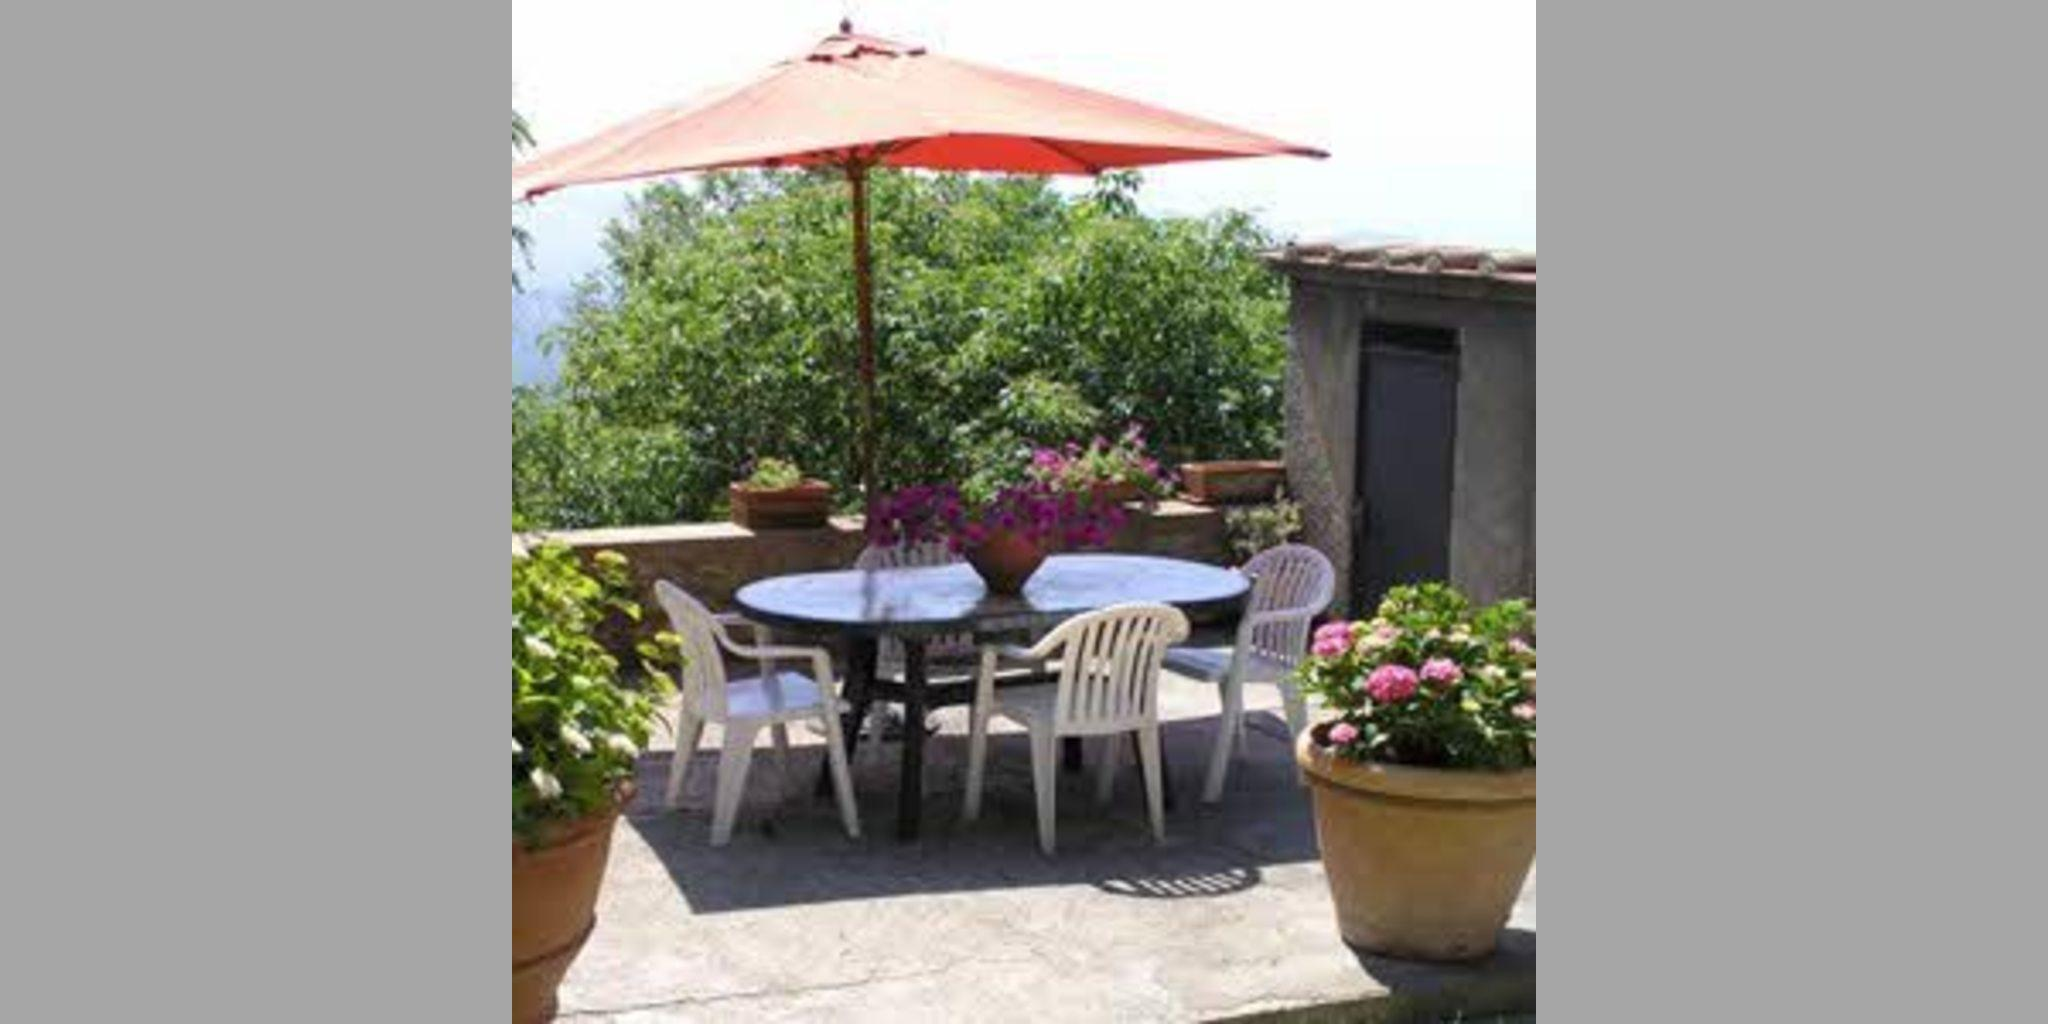 Bed & Breakfast Sesto Fiorentino - Monte Morello